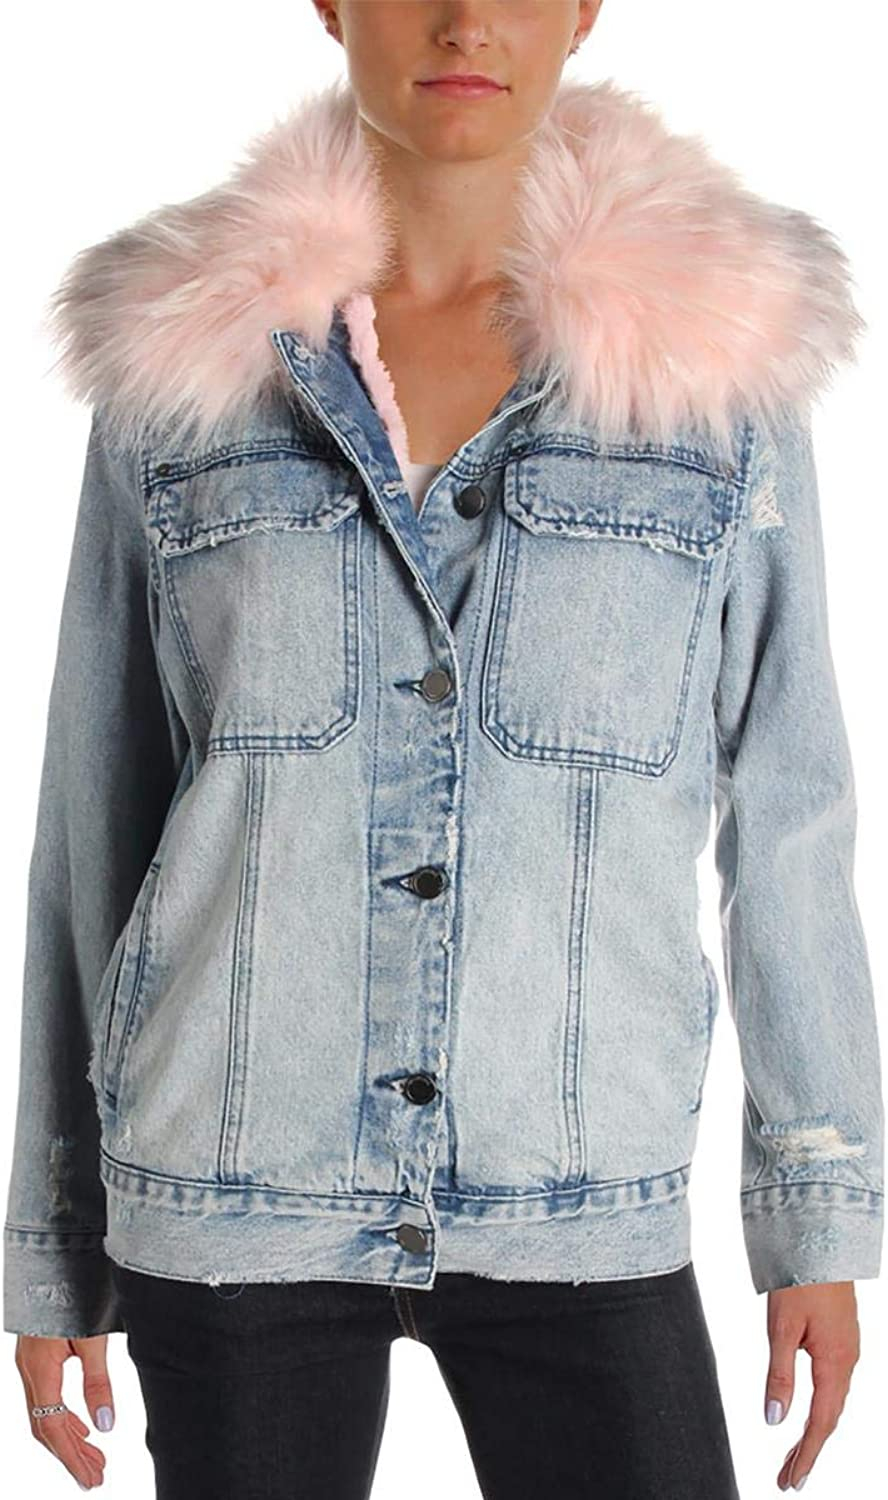 [BLANKNYC] Blank NYC Womens Distressed Casual Denim Jacket